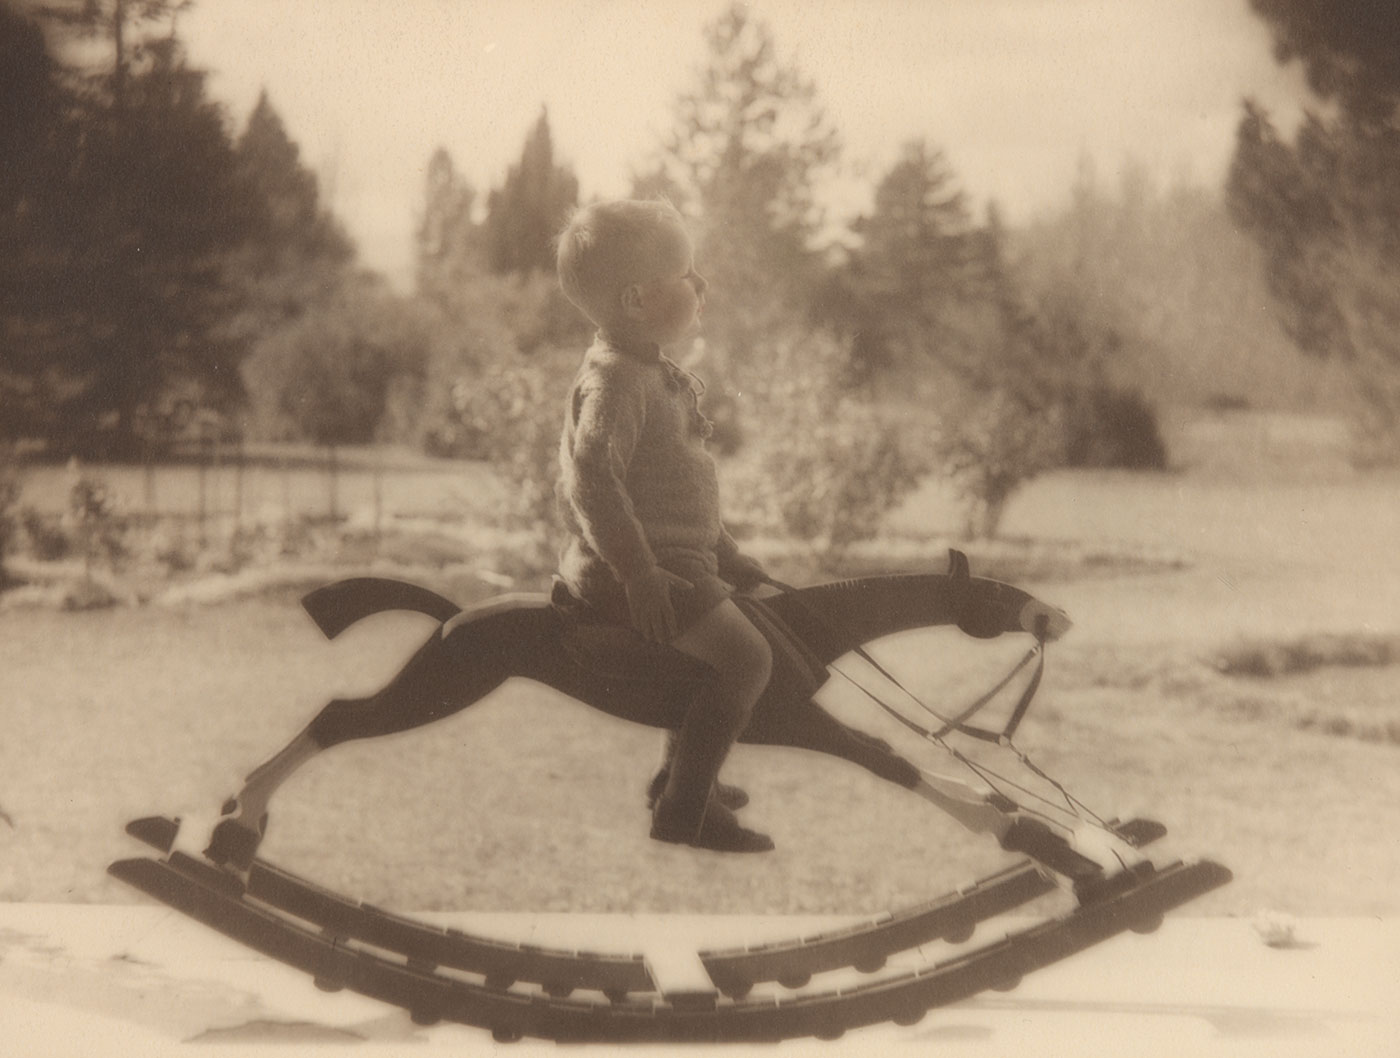 Black and white photo of a young boy on a rocking horse.